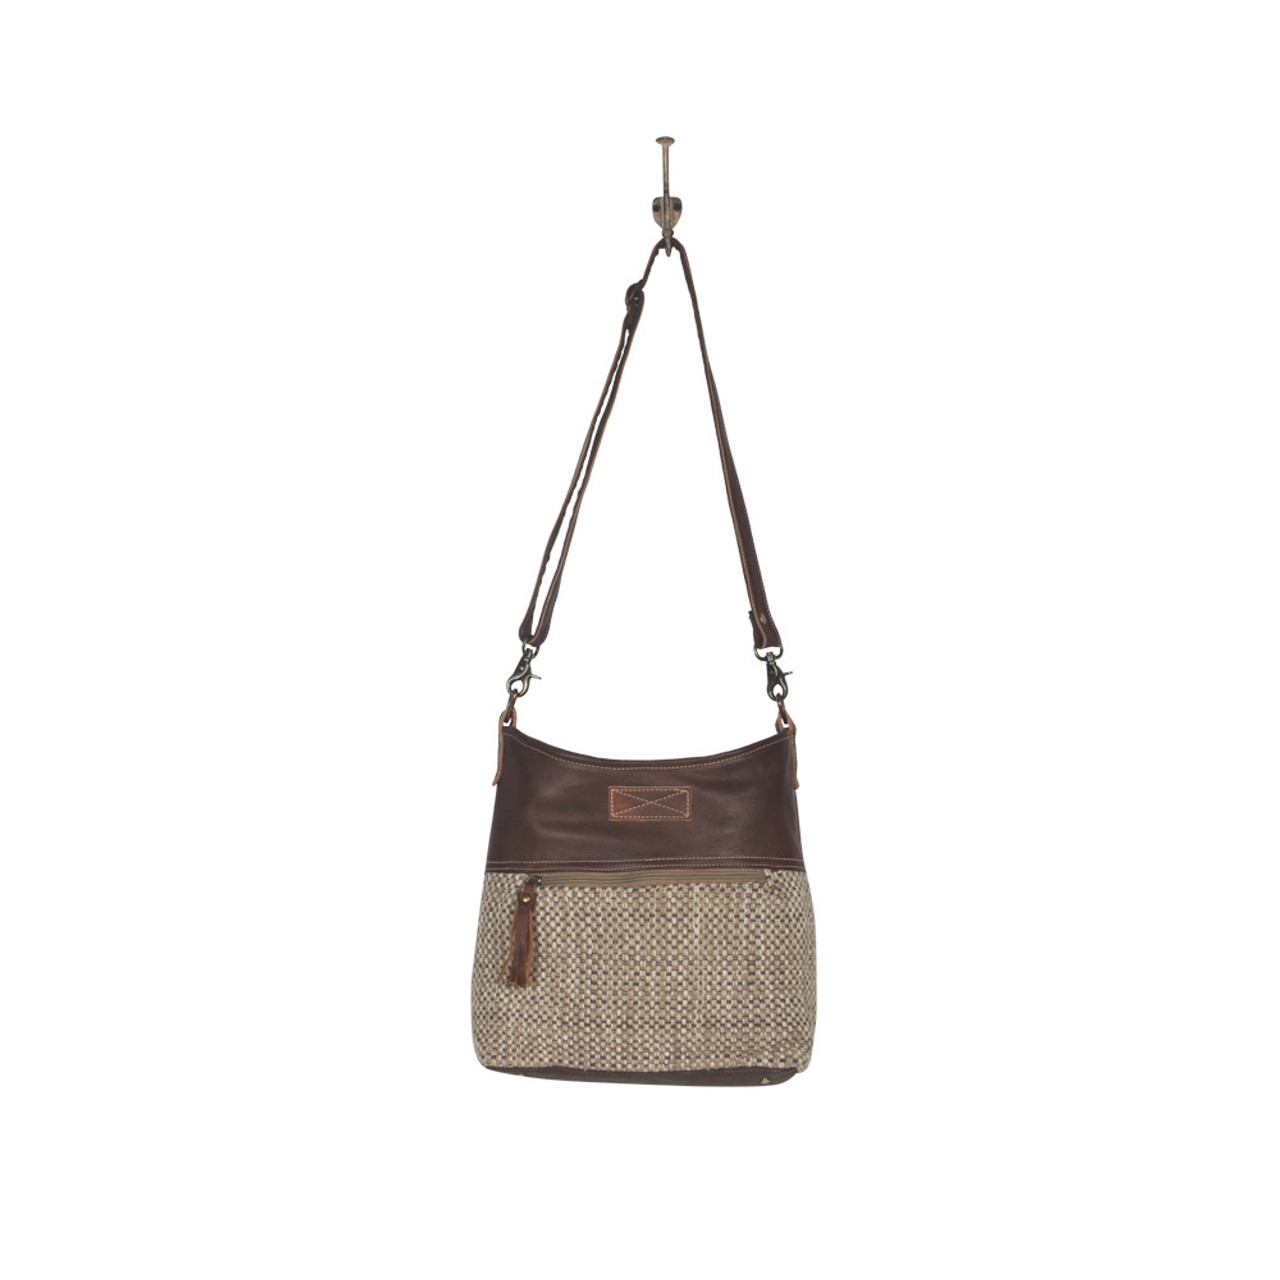 Leather, canvas & rug tote.  The front has a neutral woven pattern with main zipper closure and front pocket and zipper.  The back is solid canvas, also with a pocket and zipper.   Interior has double open pockets and a single pocket with zipper.